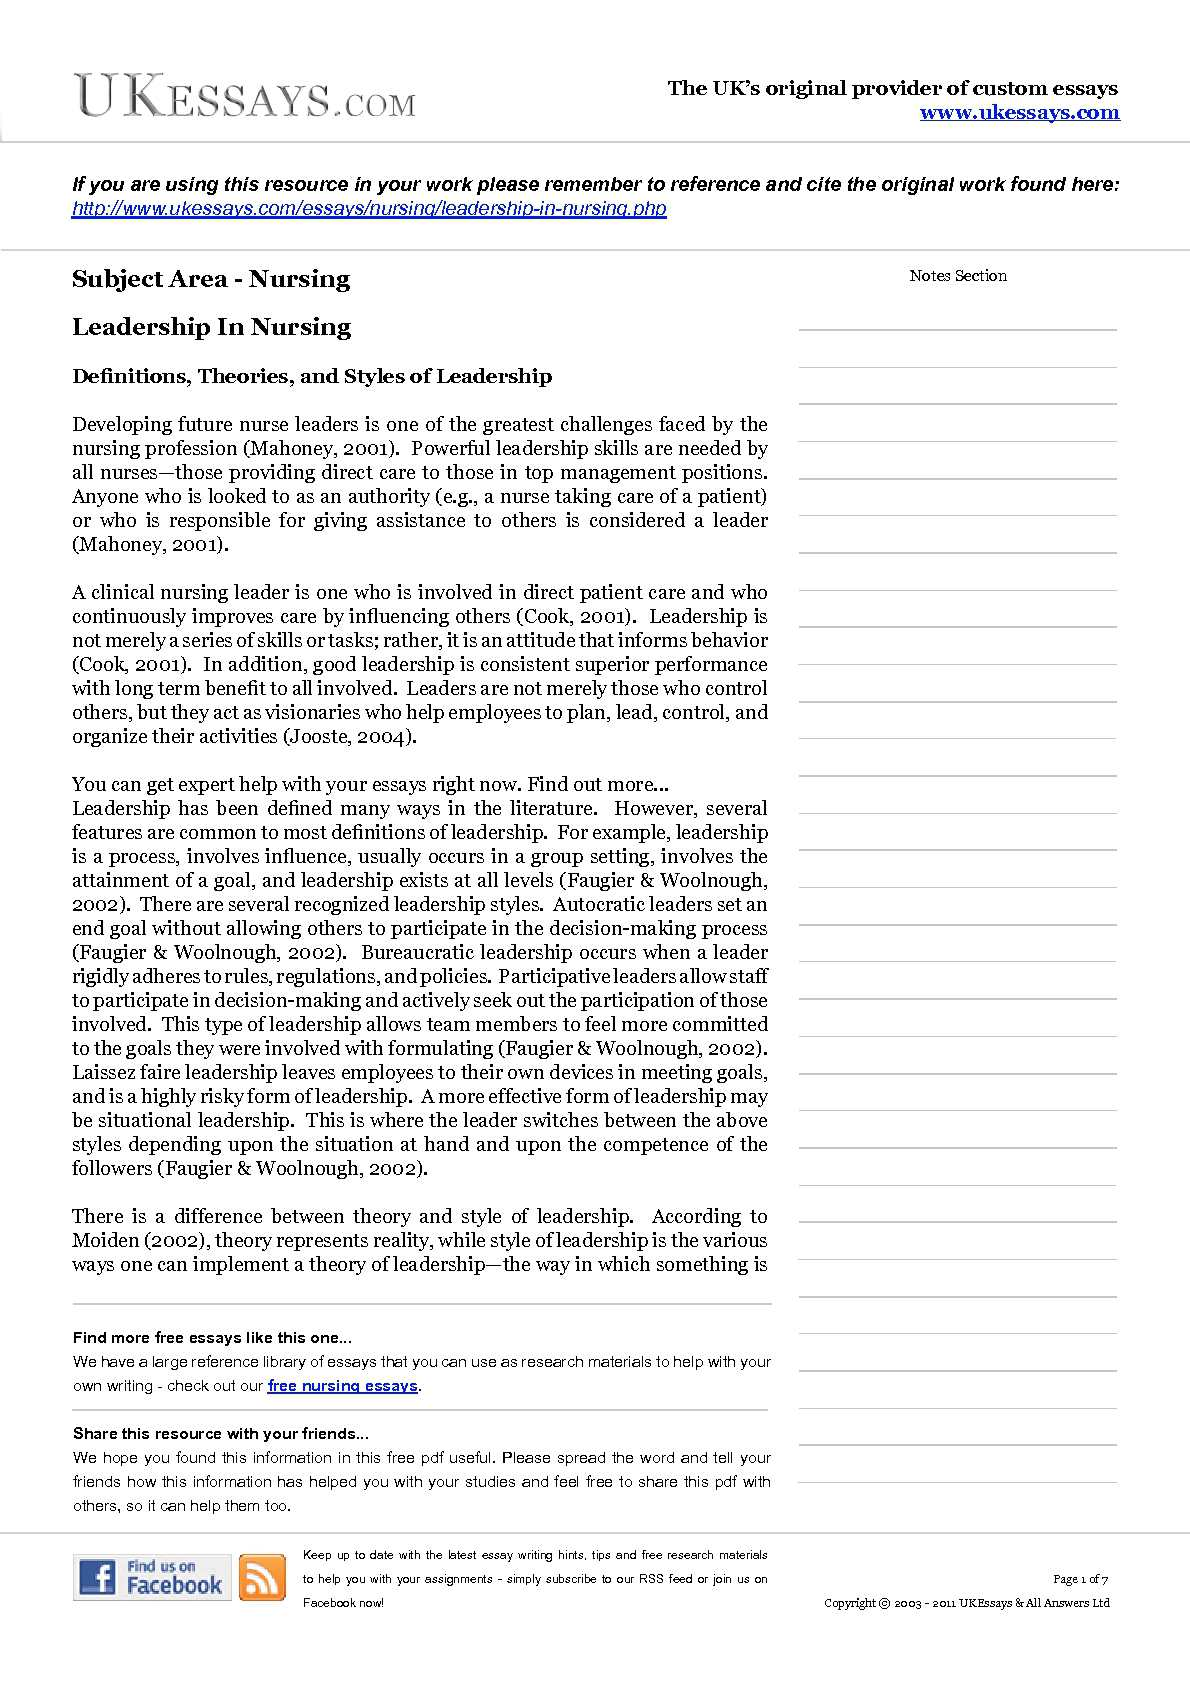 leadership research paper topics leadership research paper renaissance essay topics